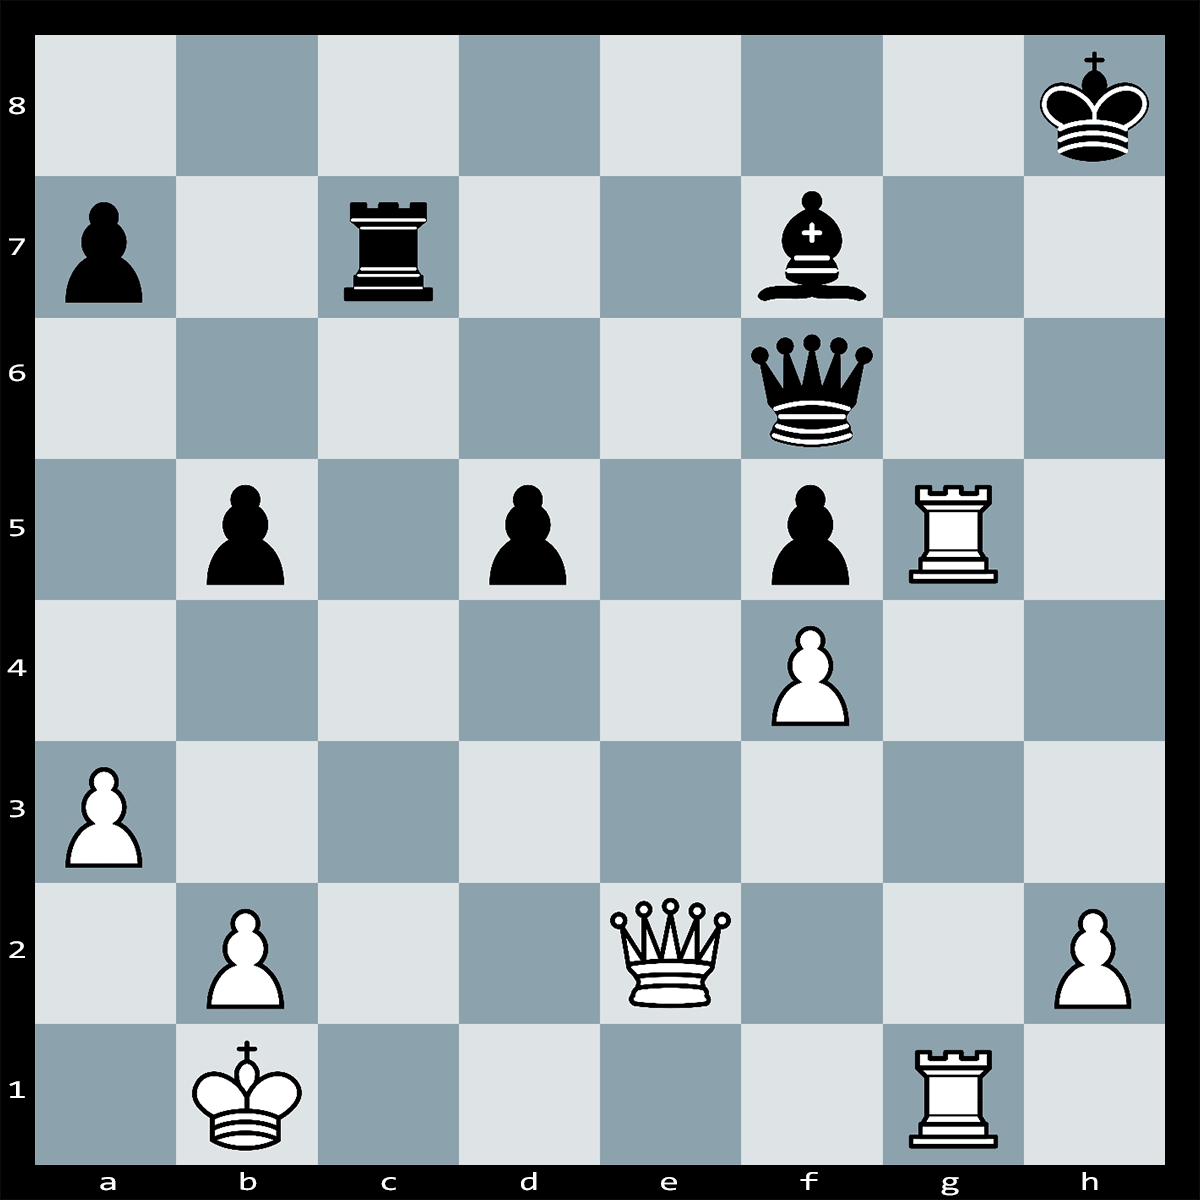 Mate in 4 moves white to play - Chess Puzzle #5